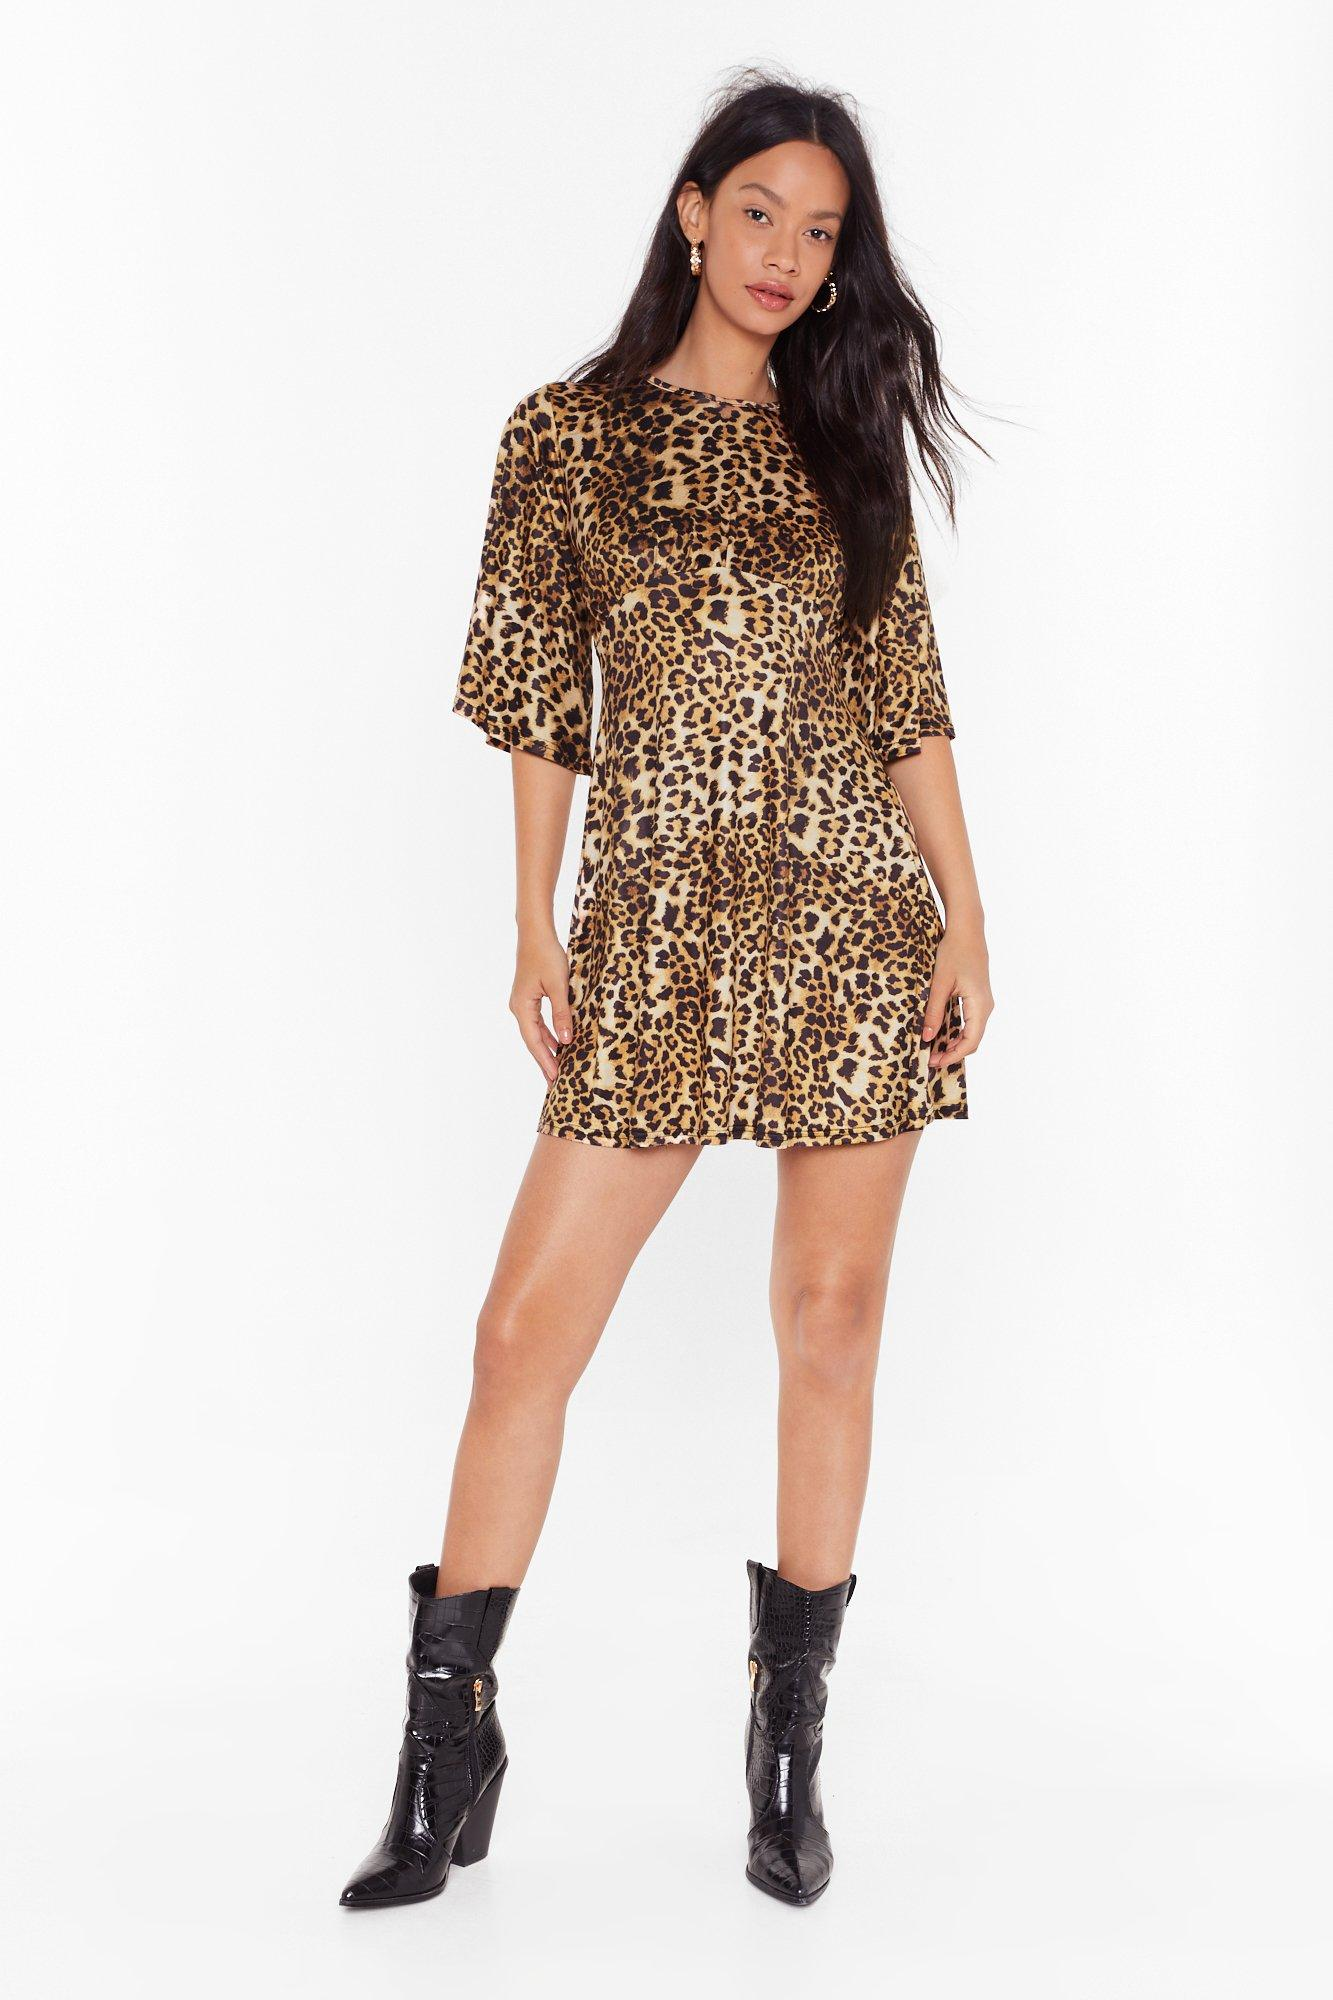 Image of She's Fierce Leopard Mini Dress